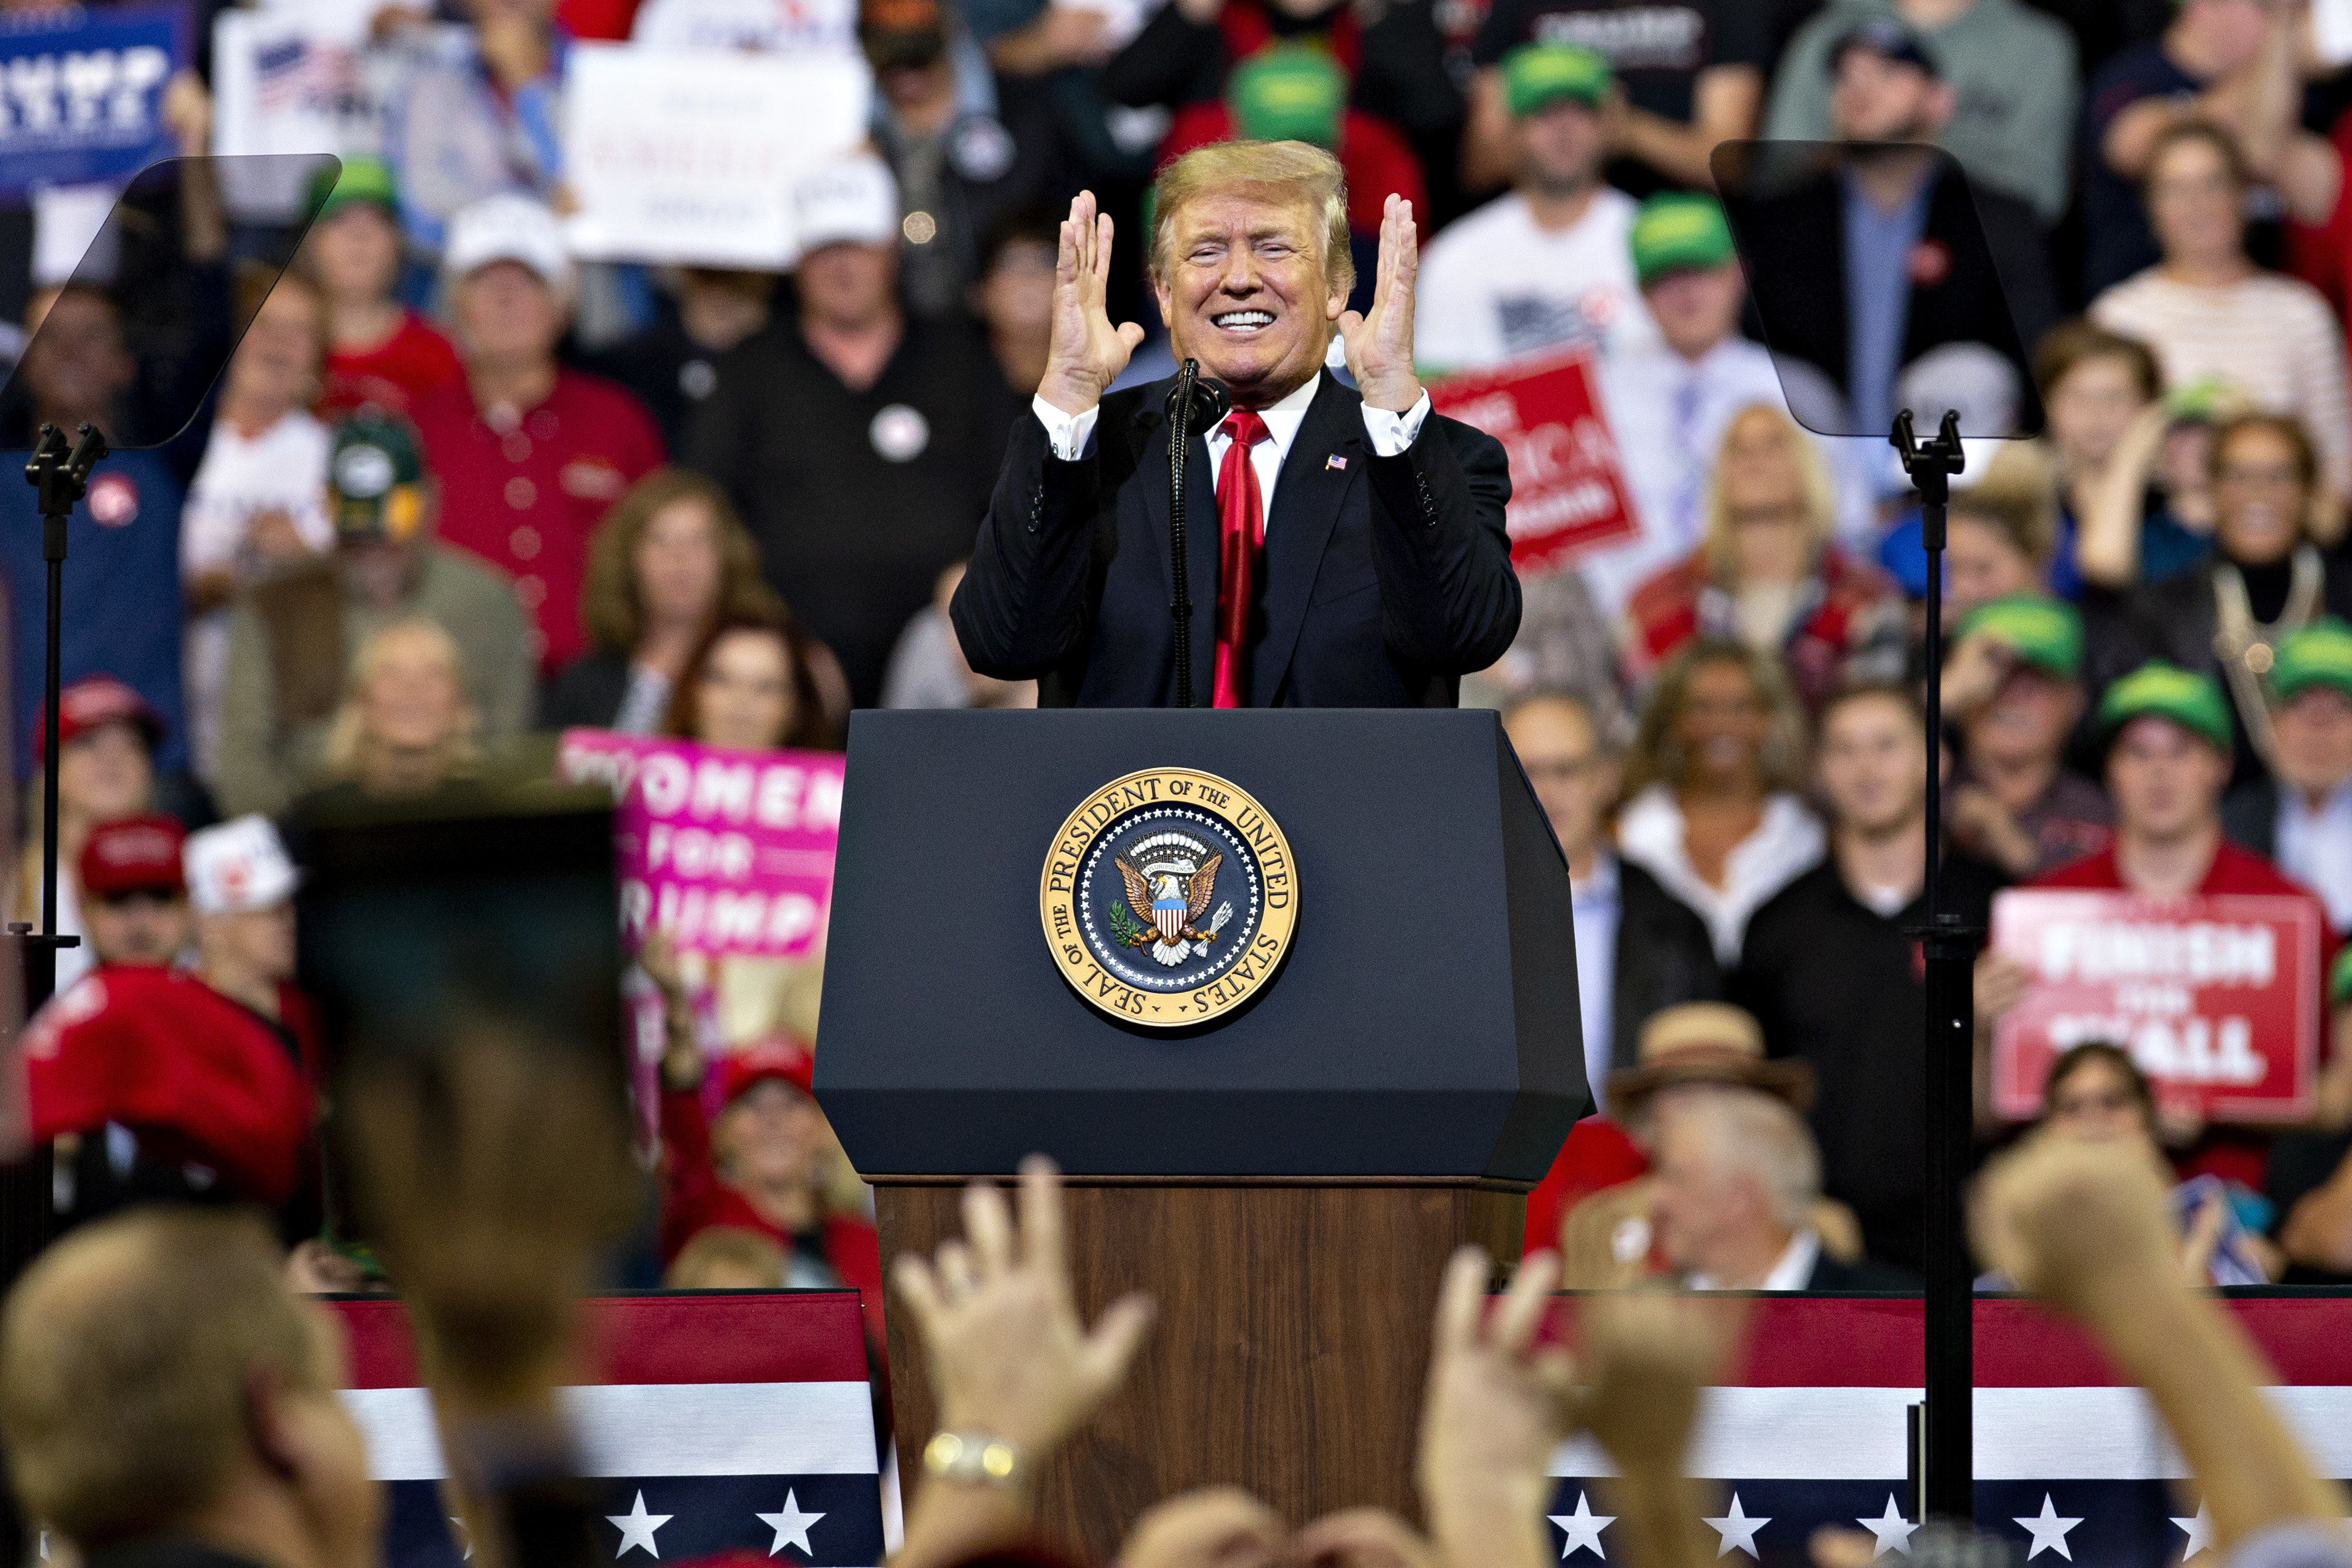 U.S. President Donald Trump gestures as he speaks at a rally in Council Bluffs, Iowa, U.S., on Tuesday, Oct. 9, 2018. Trump said he is considering Goldman Sachs Group Inc.'s Dina Powell to replace his departing ambassador to the United Nations, Nikki Haley. Photographer: Daniel Acker/Bloomberg via Getty Images